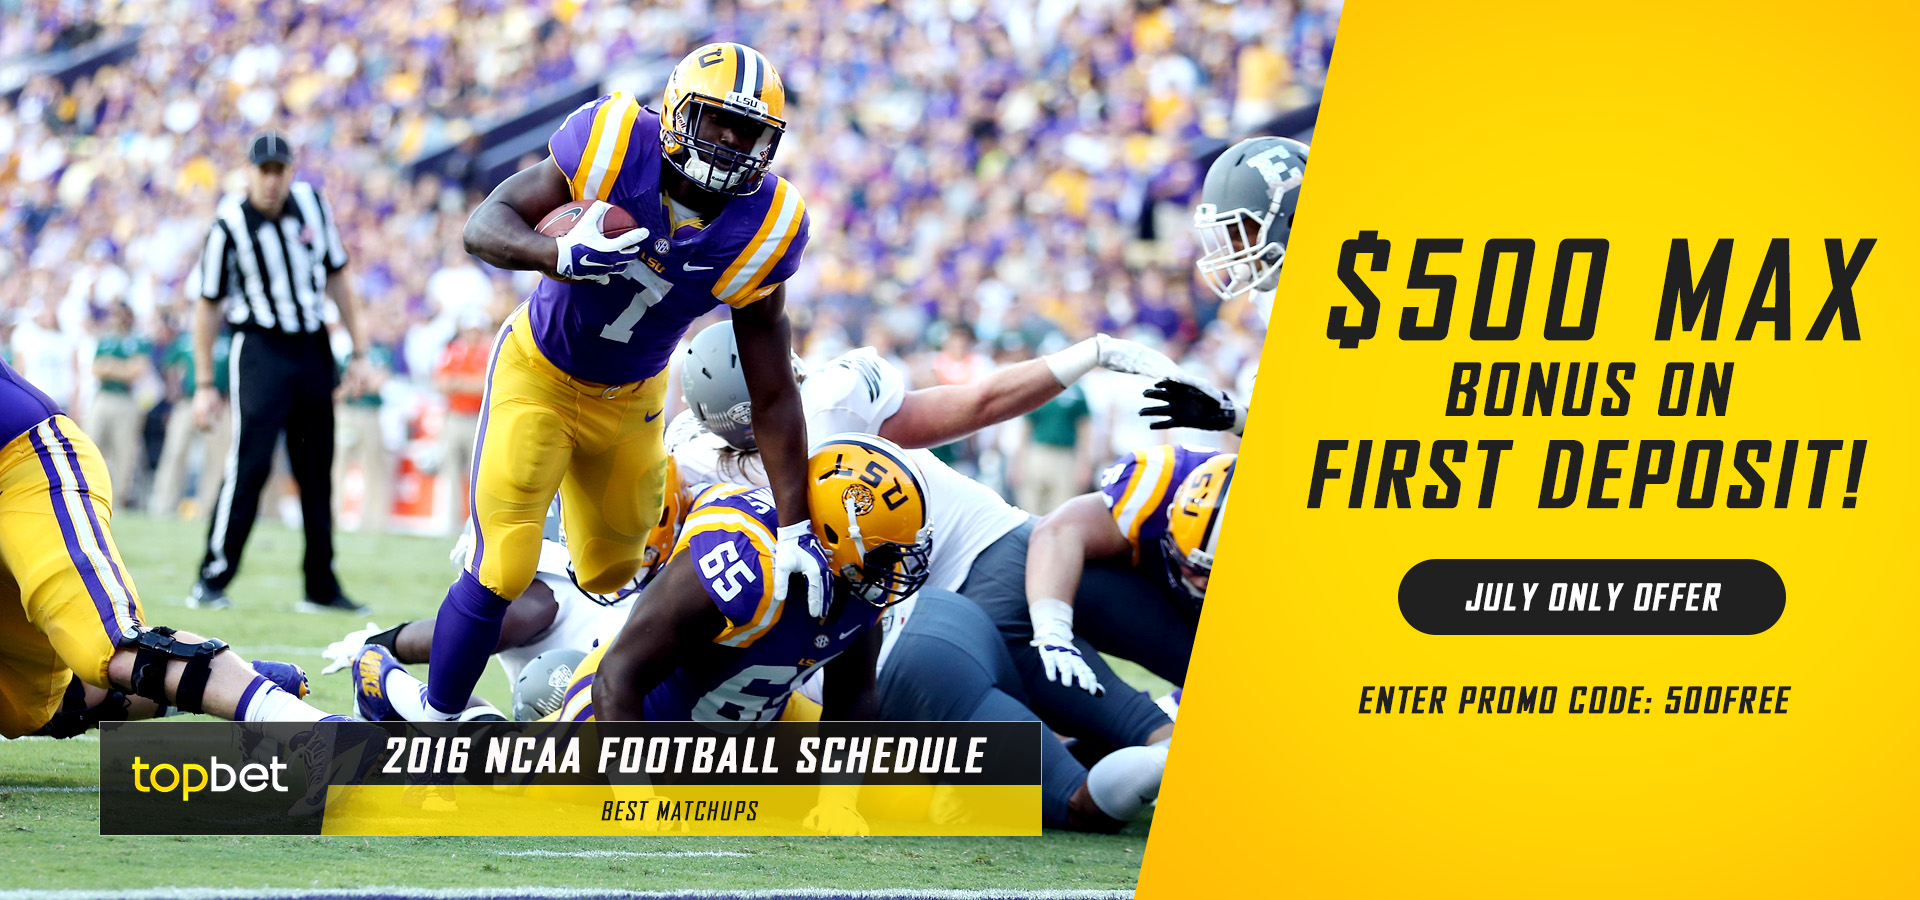 college football last night covers ncaaf matchups